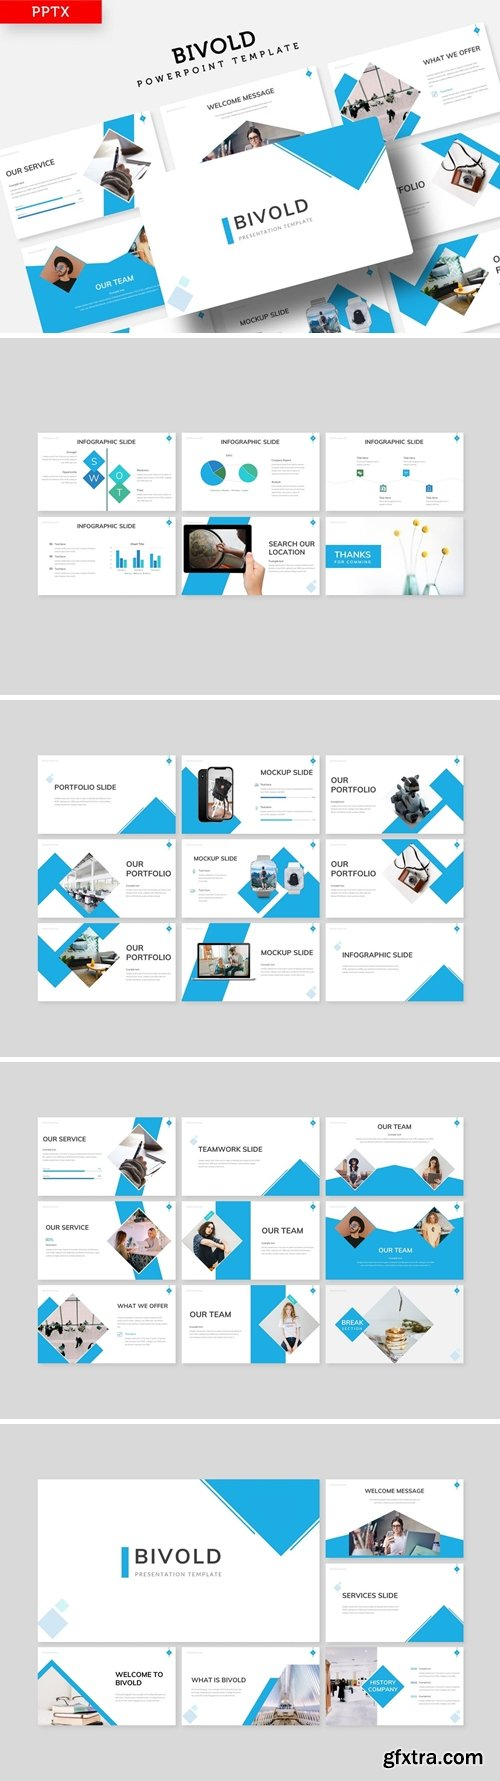 Bivold Powerpoint, Keynote and Google Slides Templates